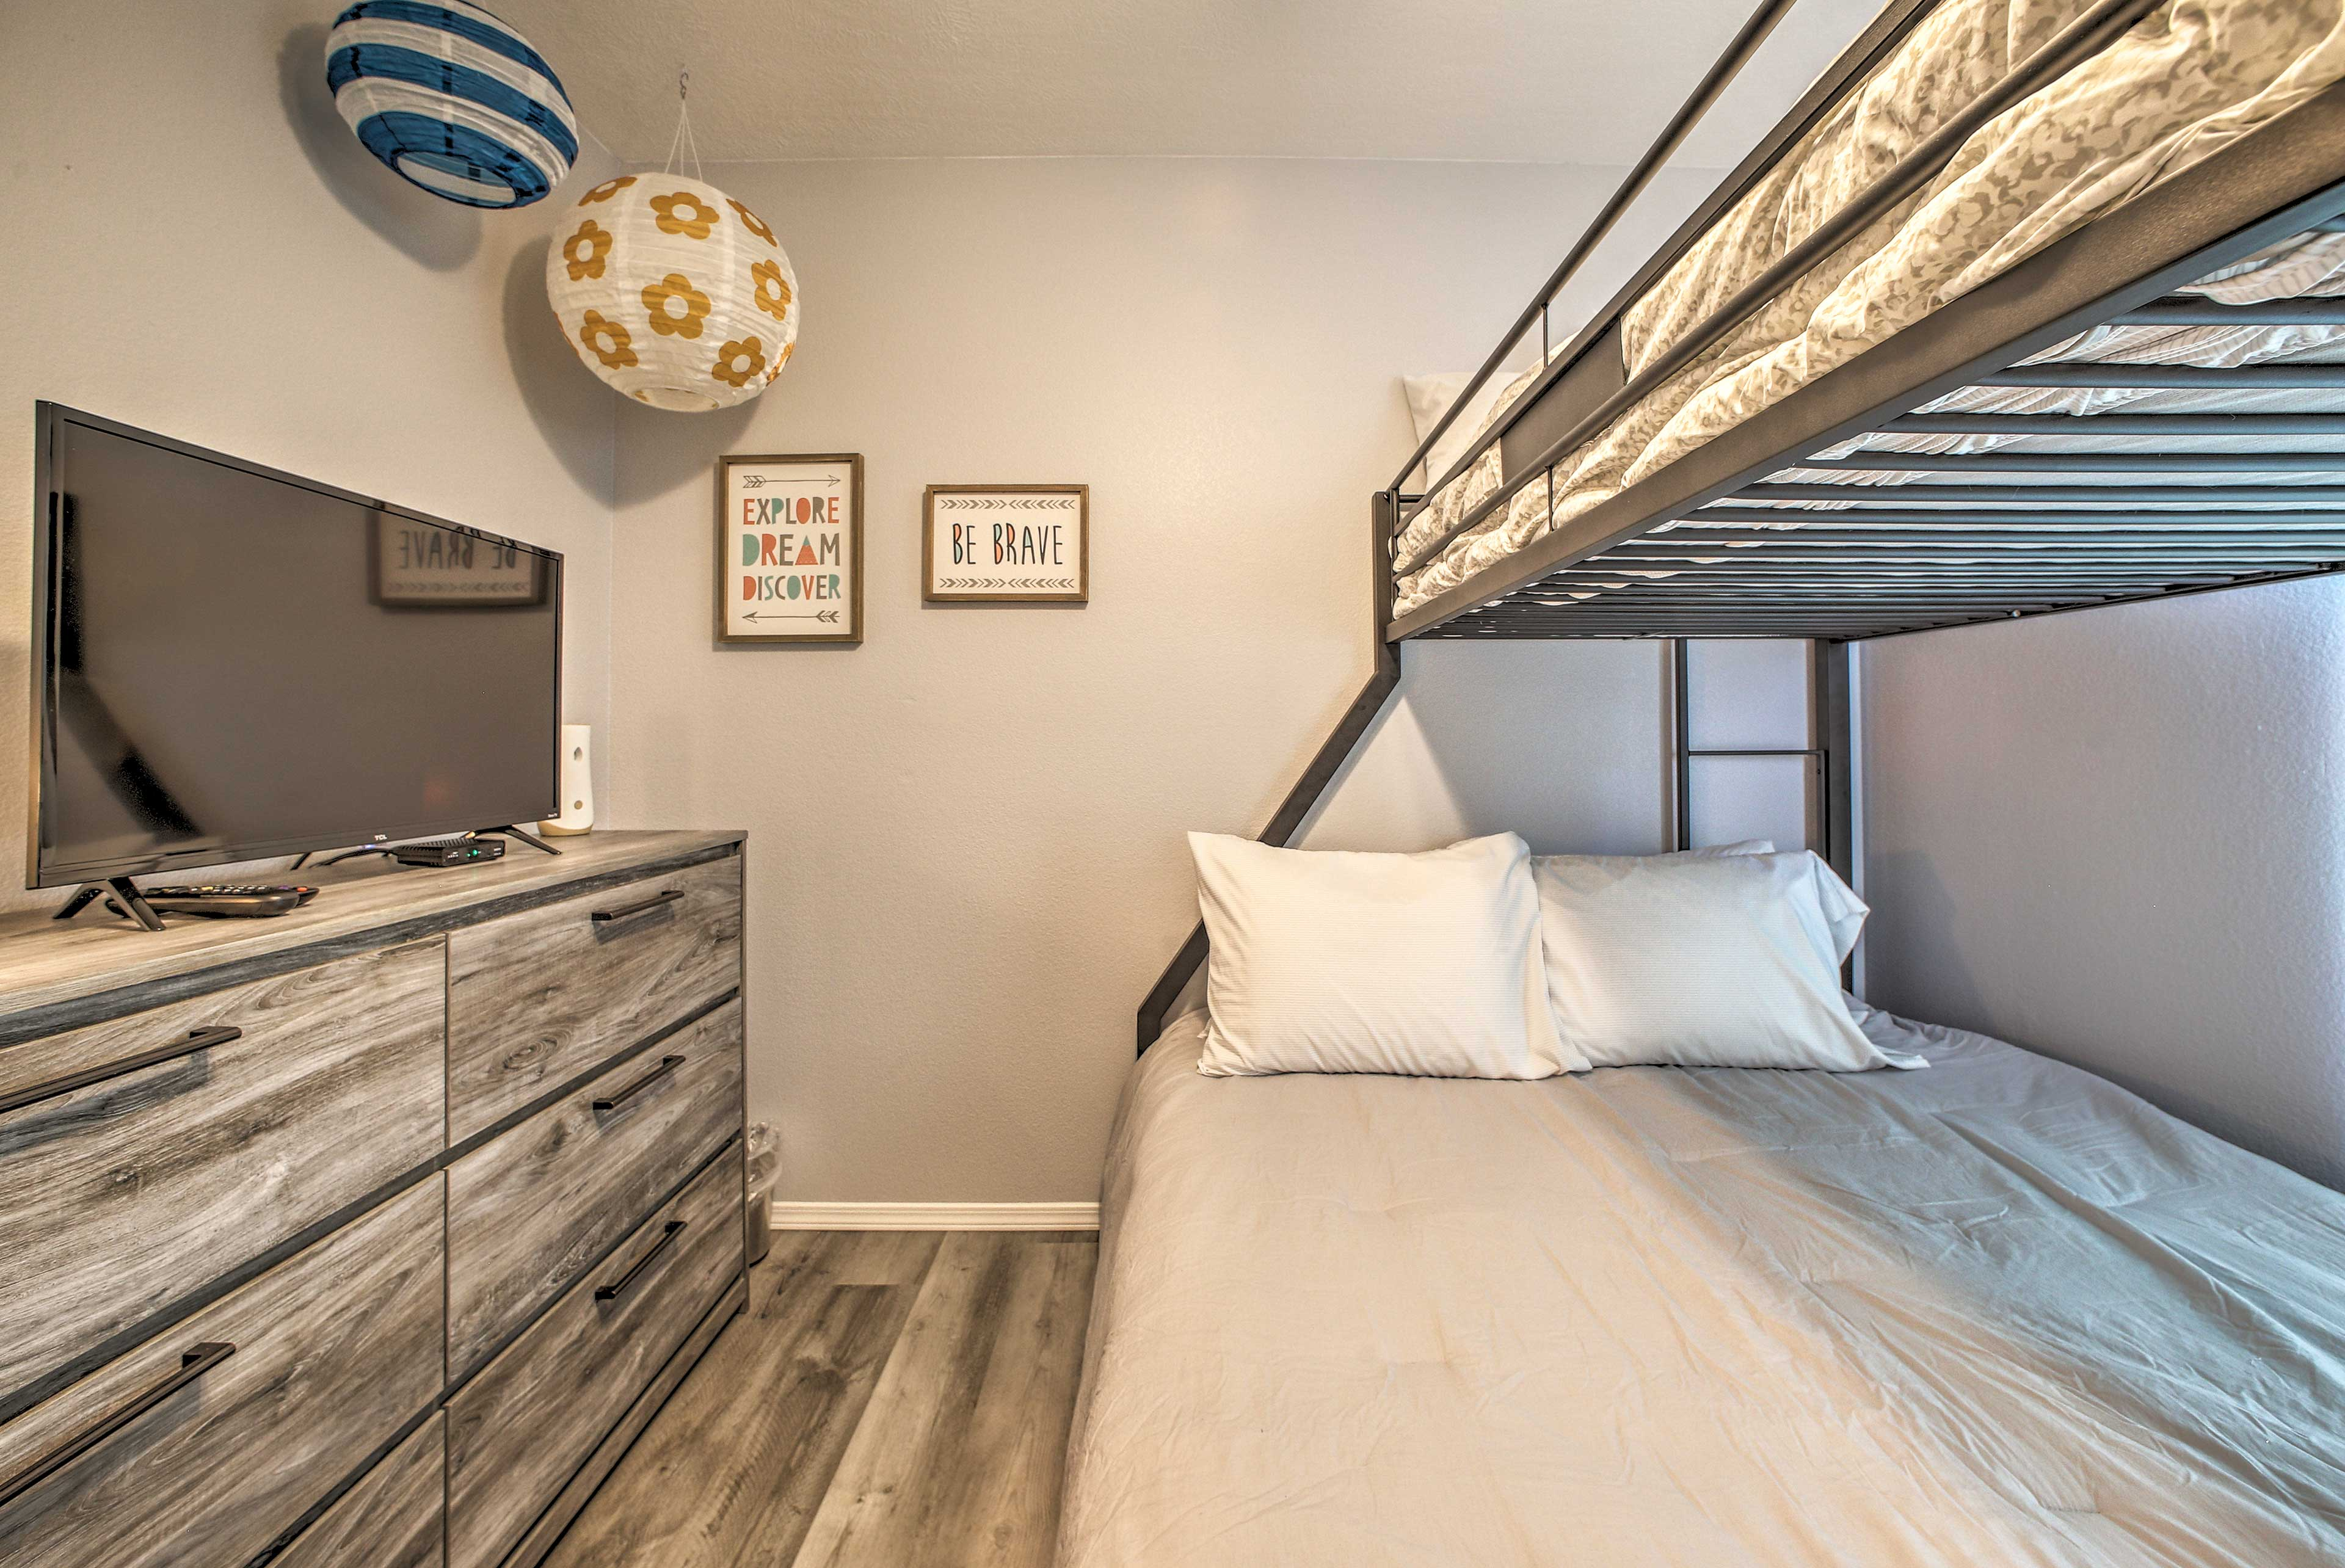 Kids will be quick to claim the top bunk!